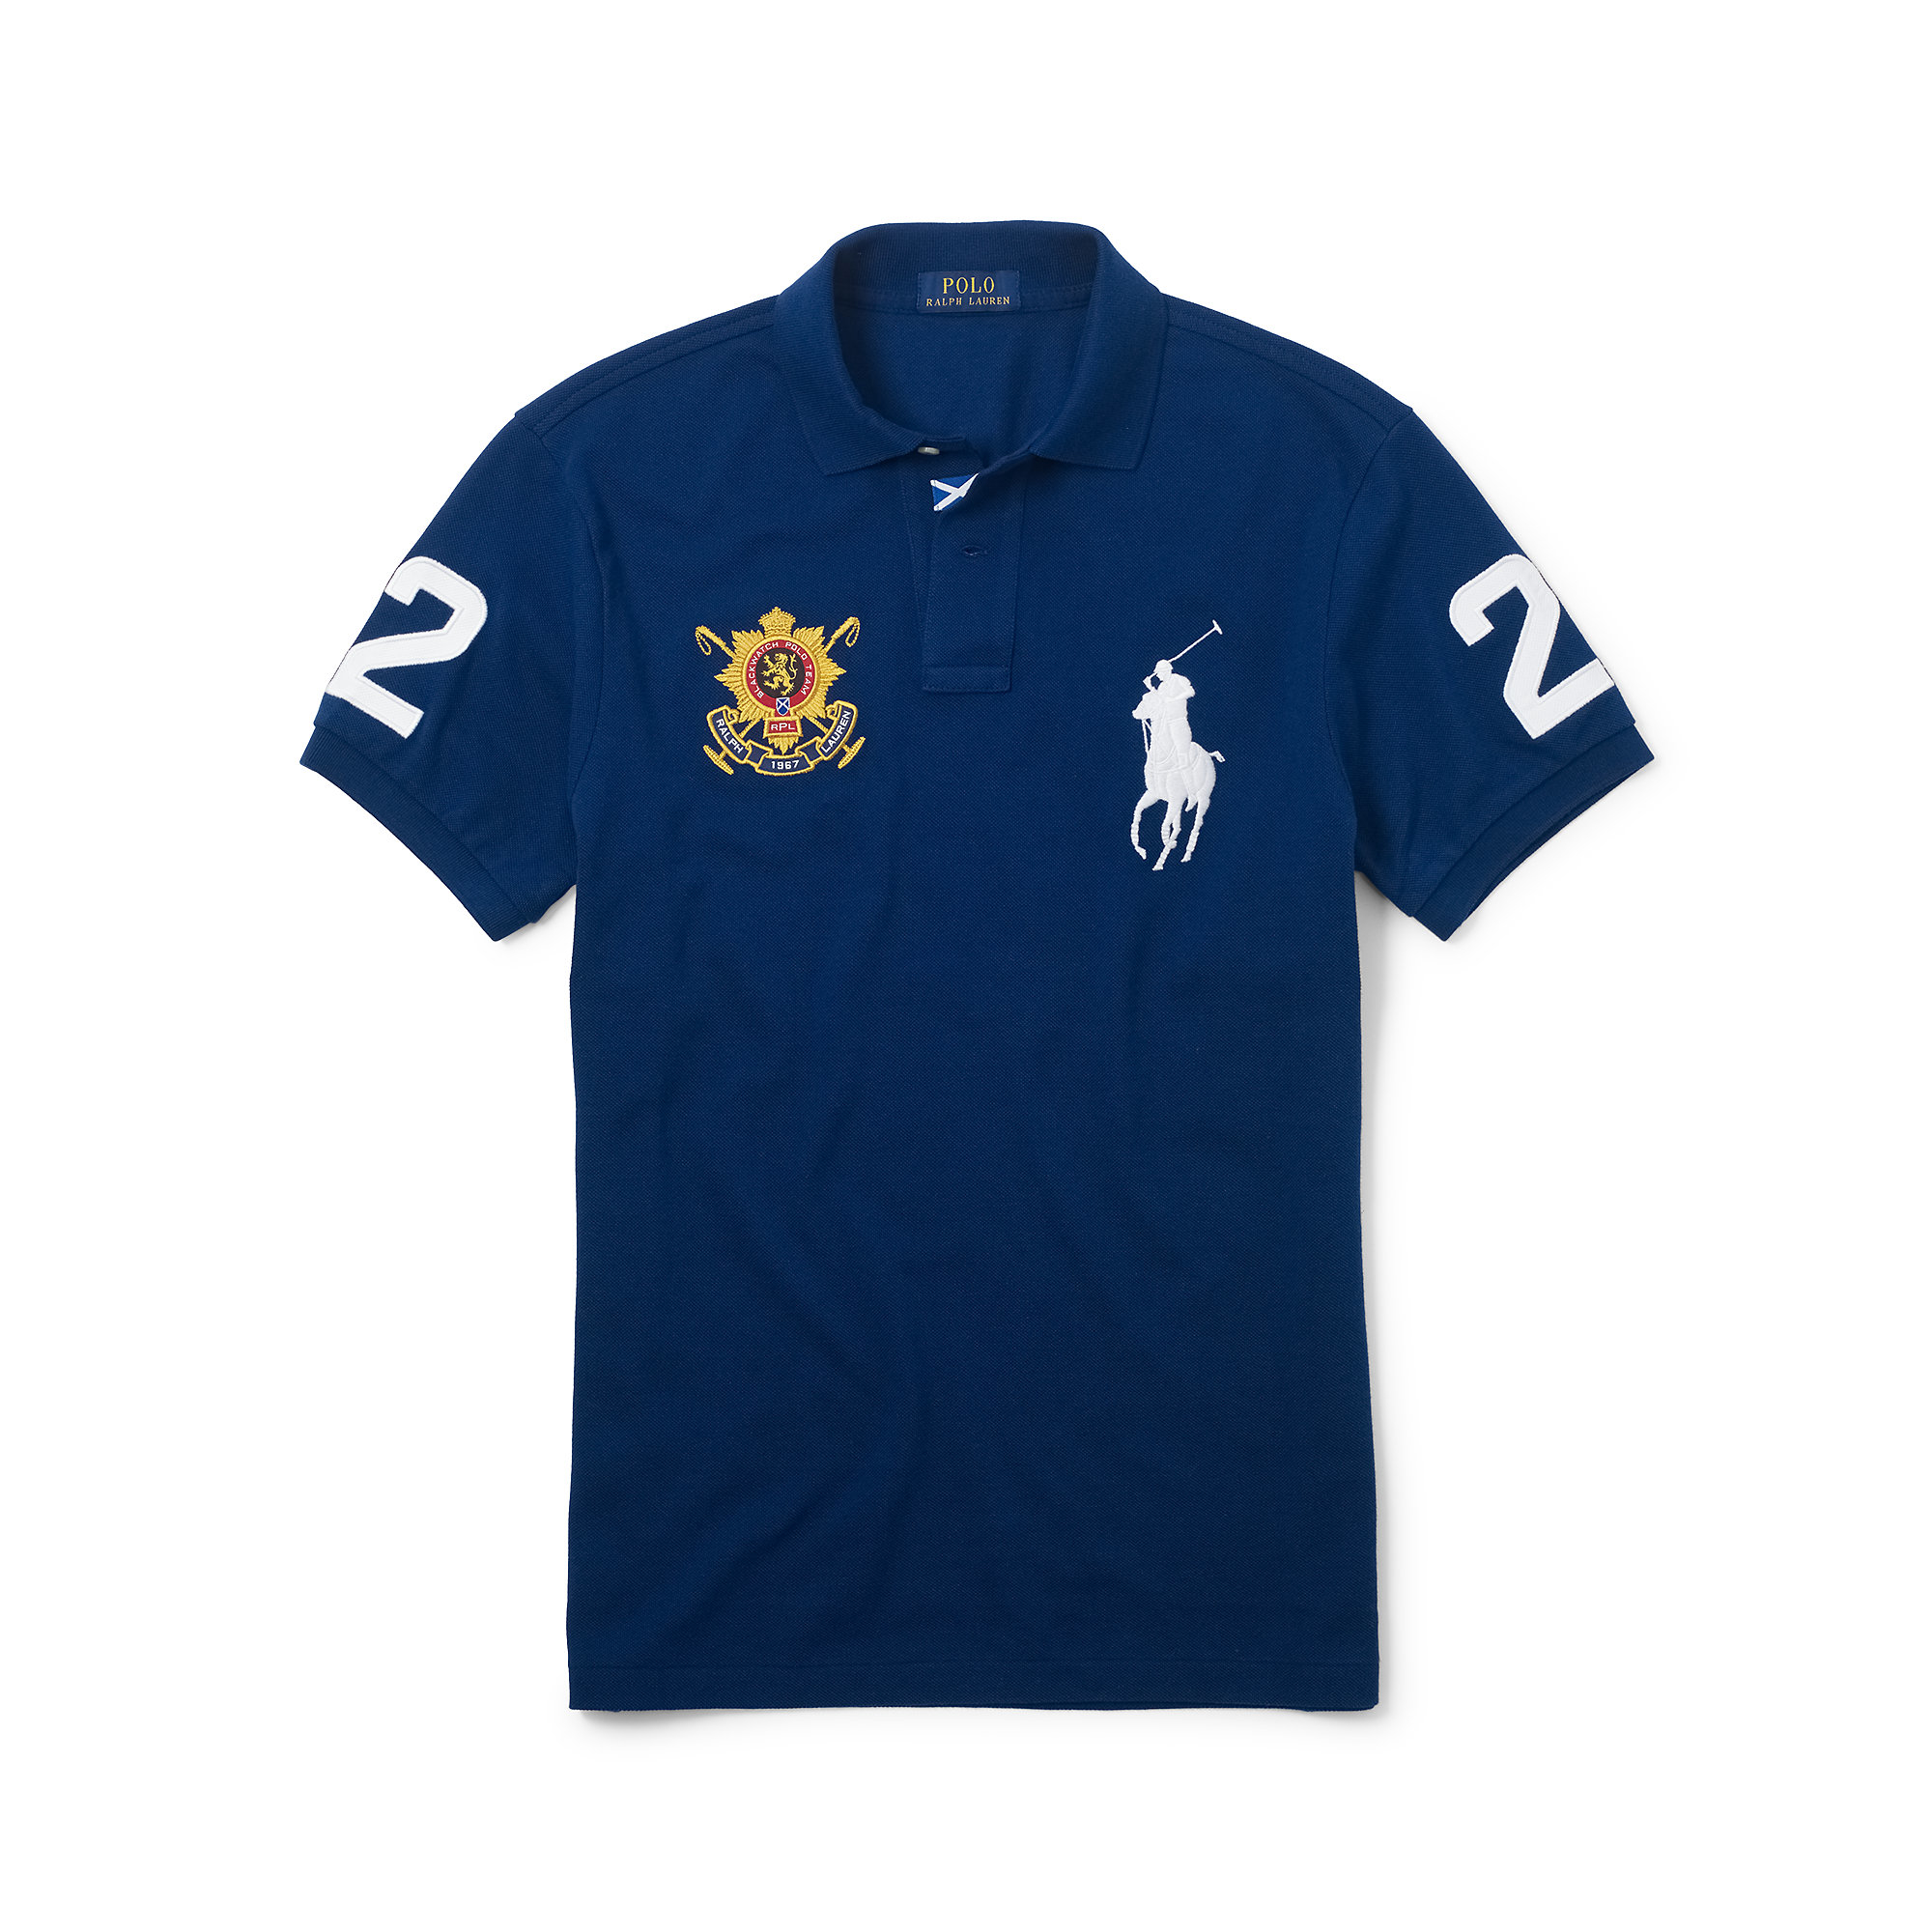 blue ralph lauren polo shirts images galleries with a bite. Black Bedroom Furniture Sets. Home Design Ideas